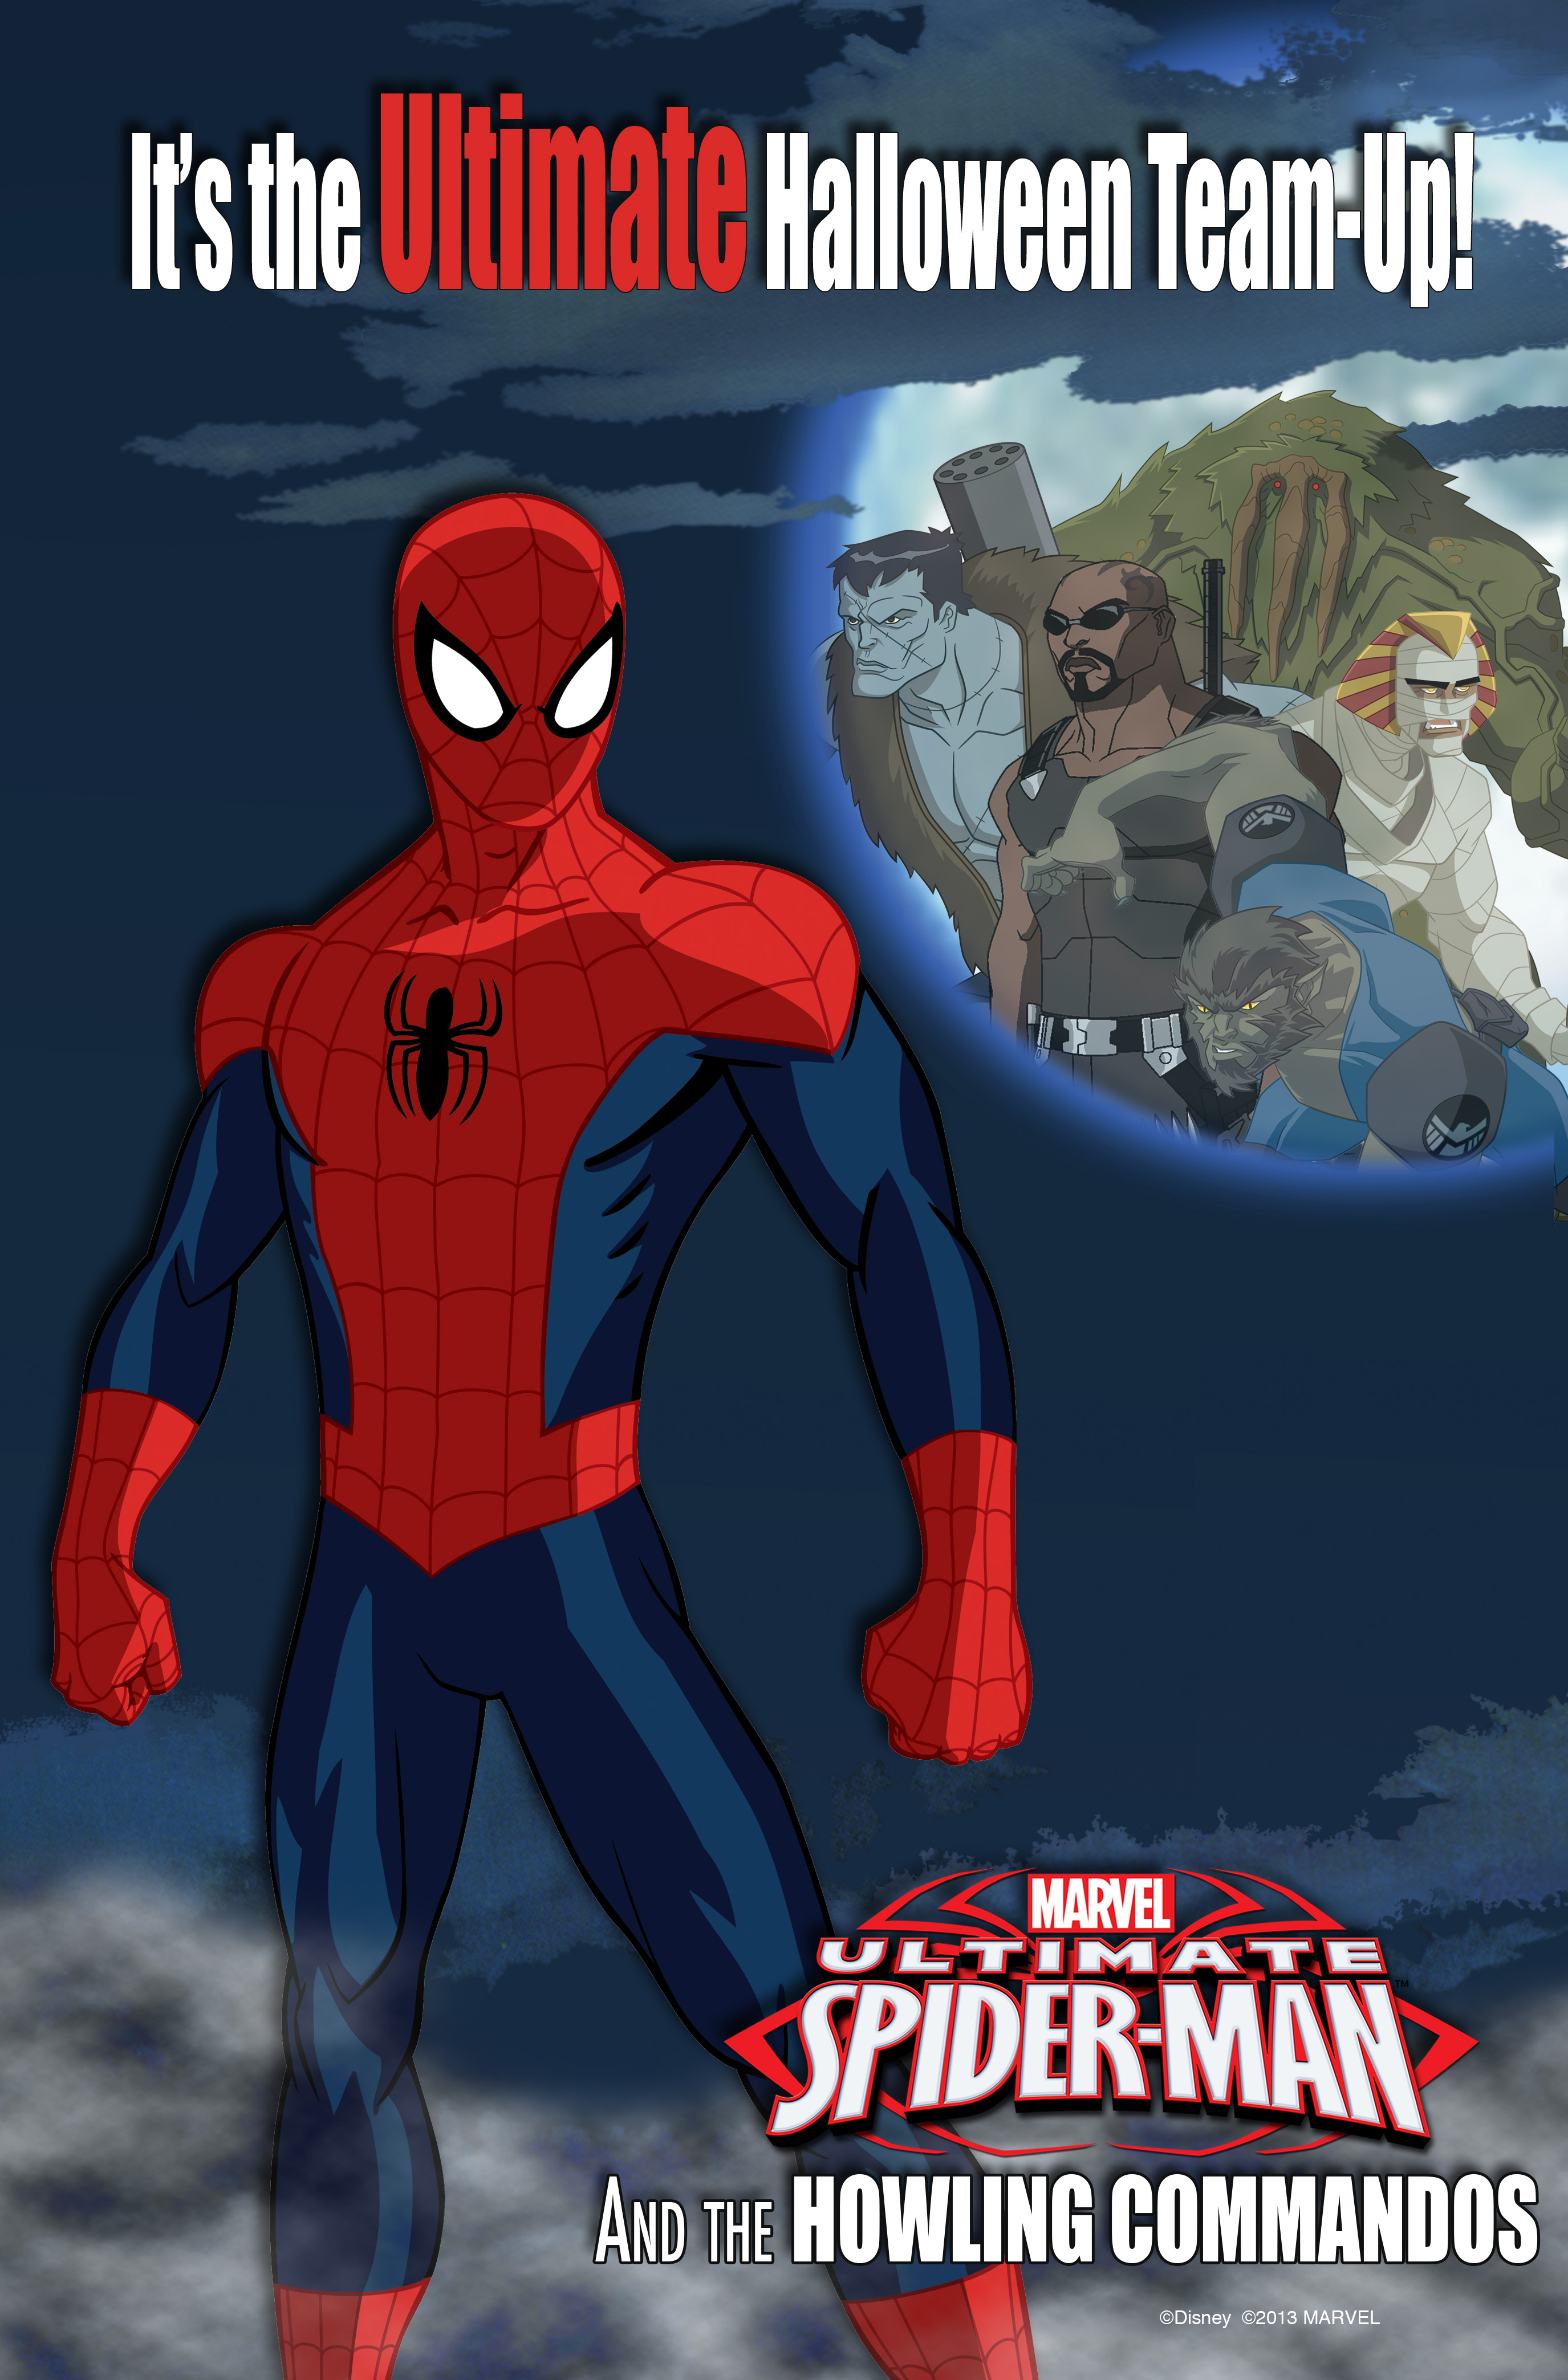 marvel's ultimate spider-man and the howling commandos to make